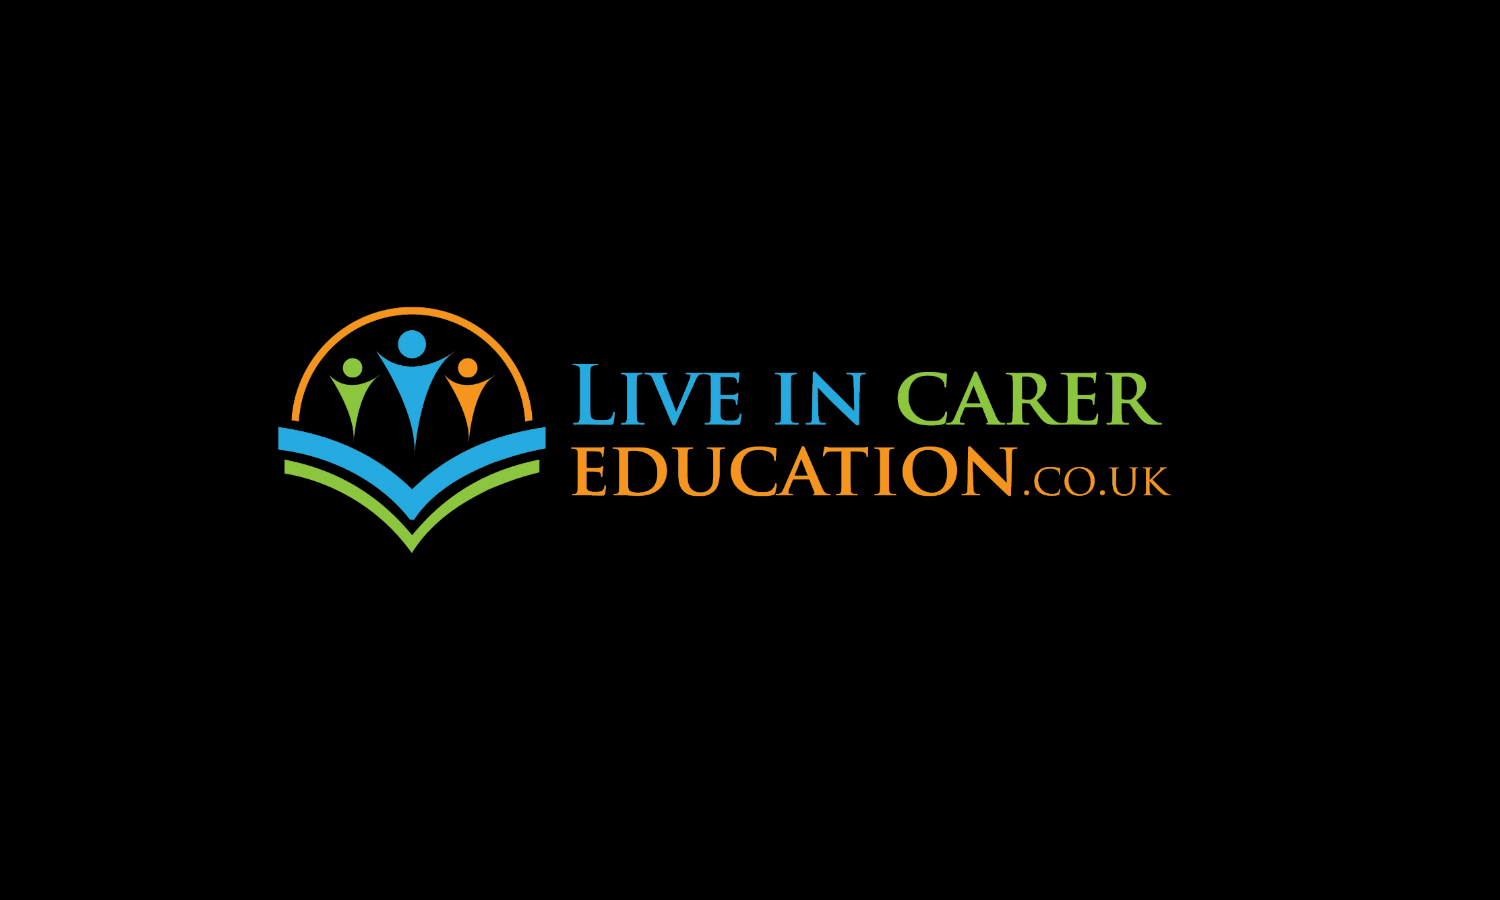 live in carer education